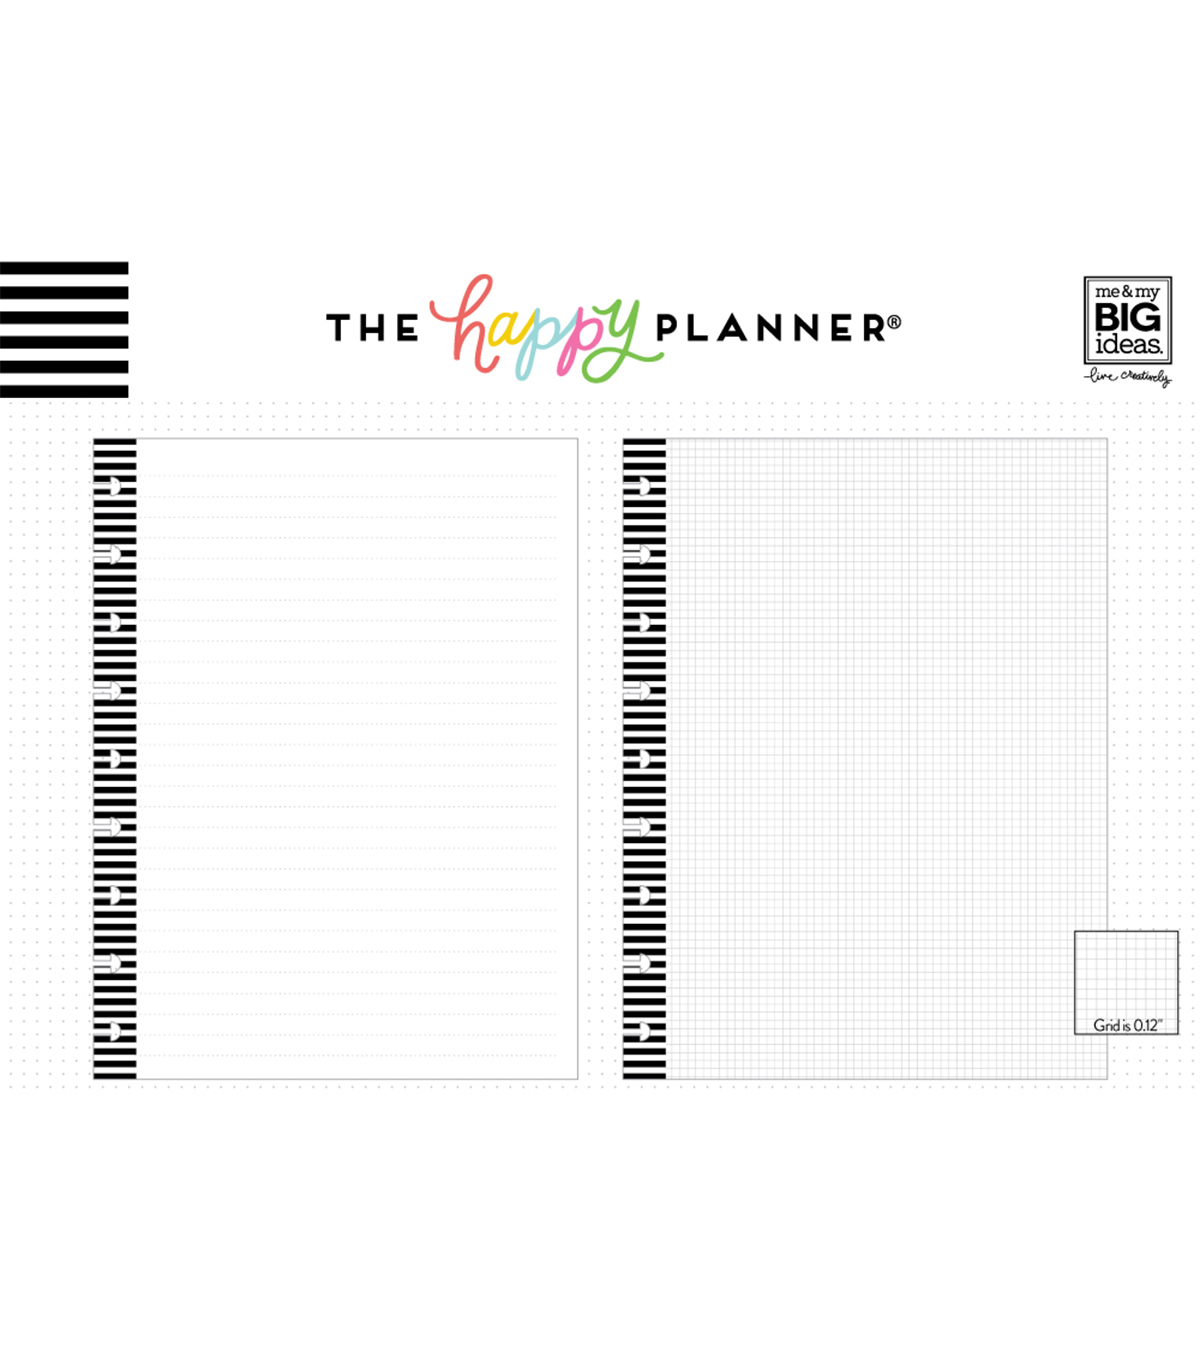 The Happy Planner Graph Fill Paper with Black Stripes